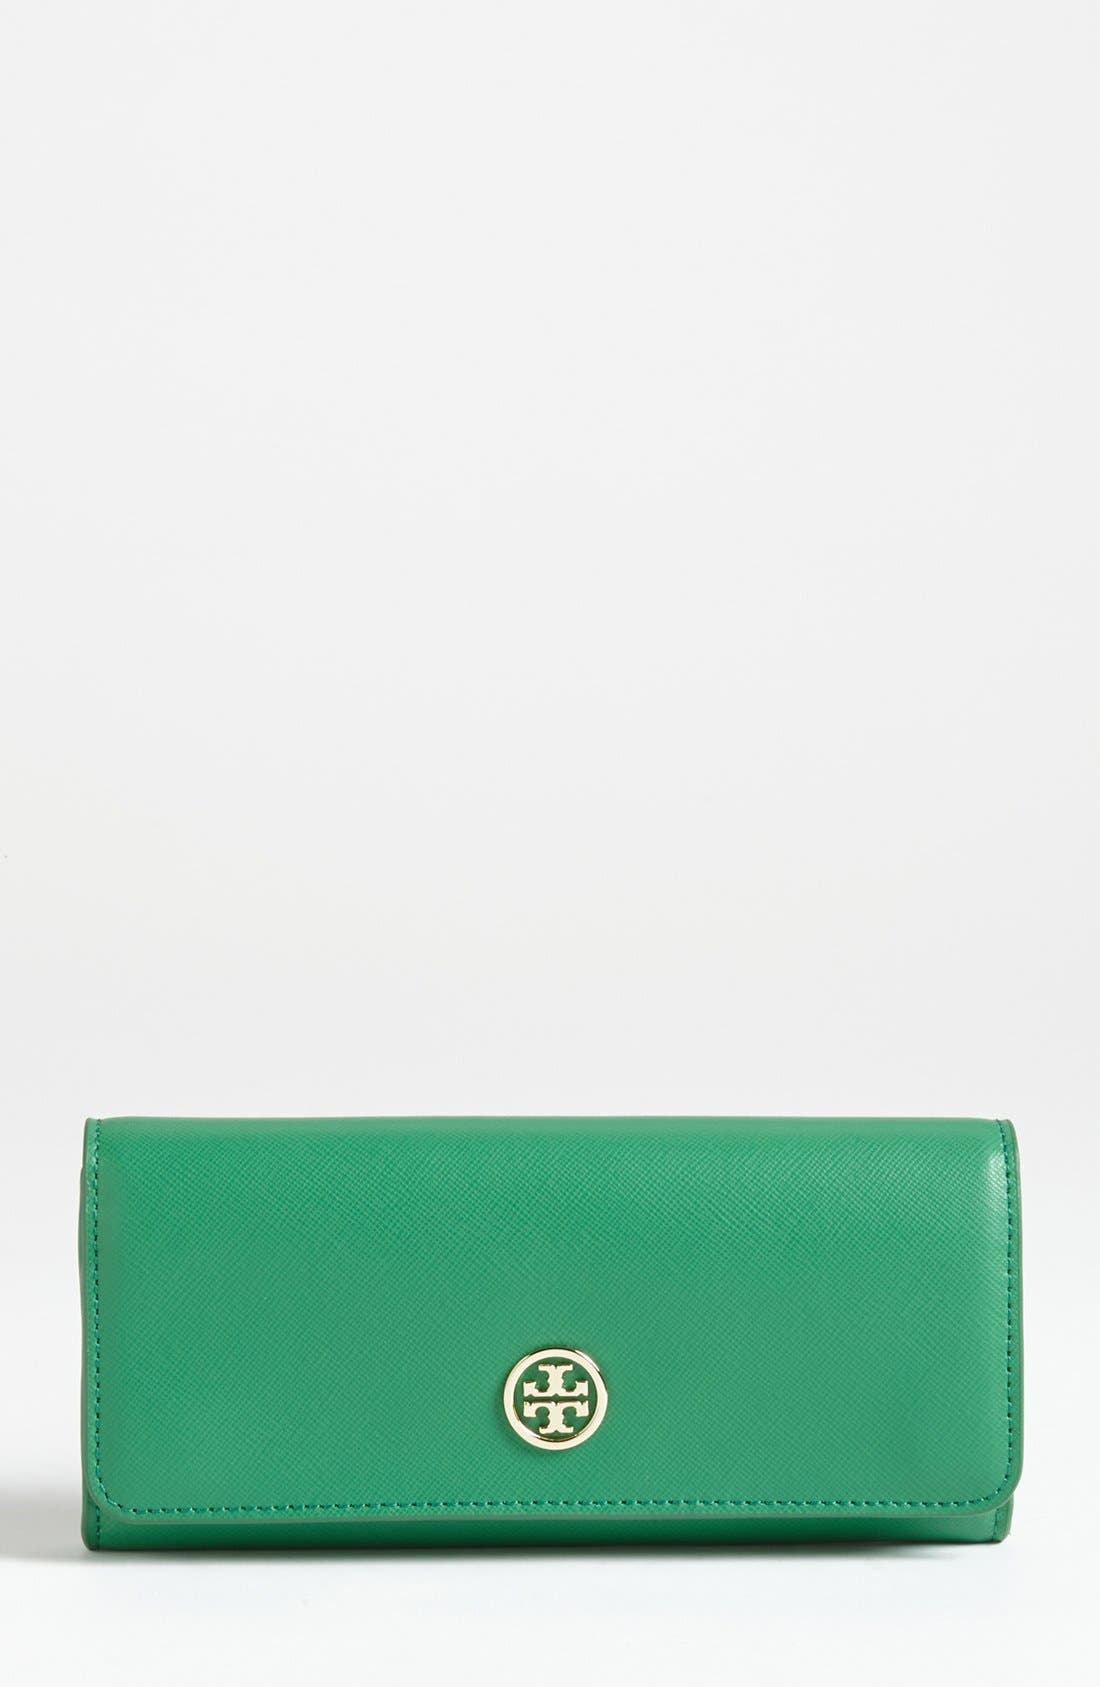 Alternate Image 1 Selected - Tory Burch 'Robinson' Saffiano Leather Wallet